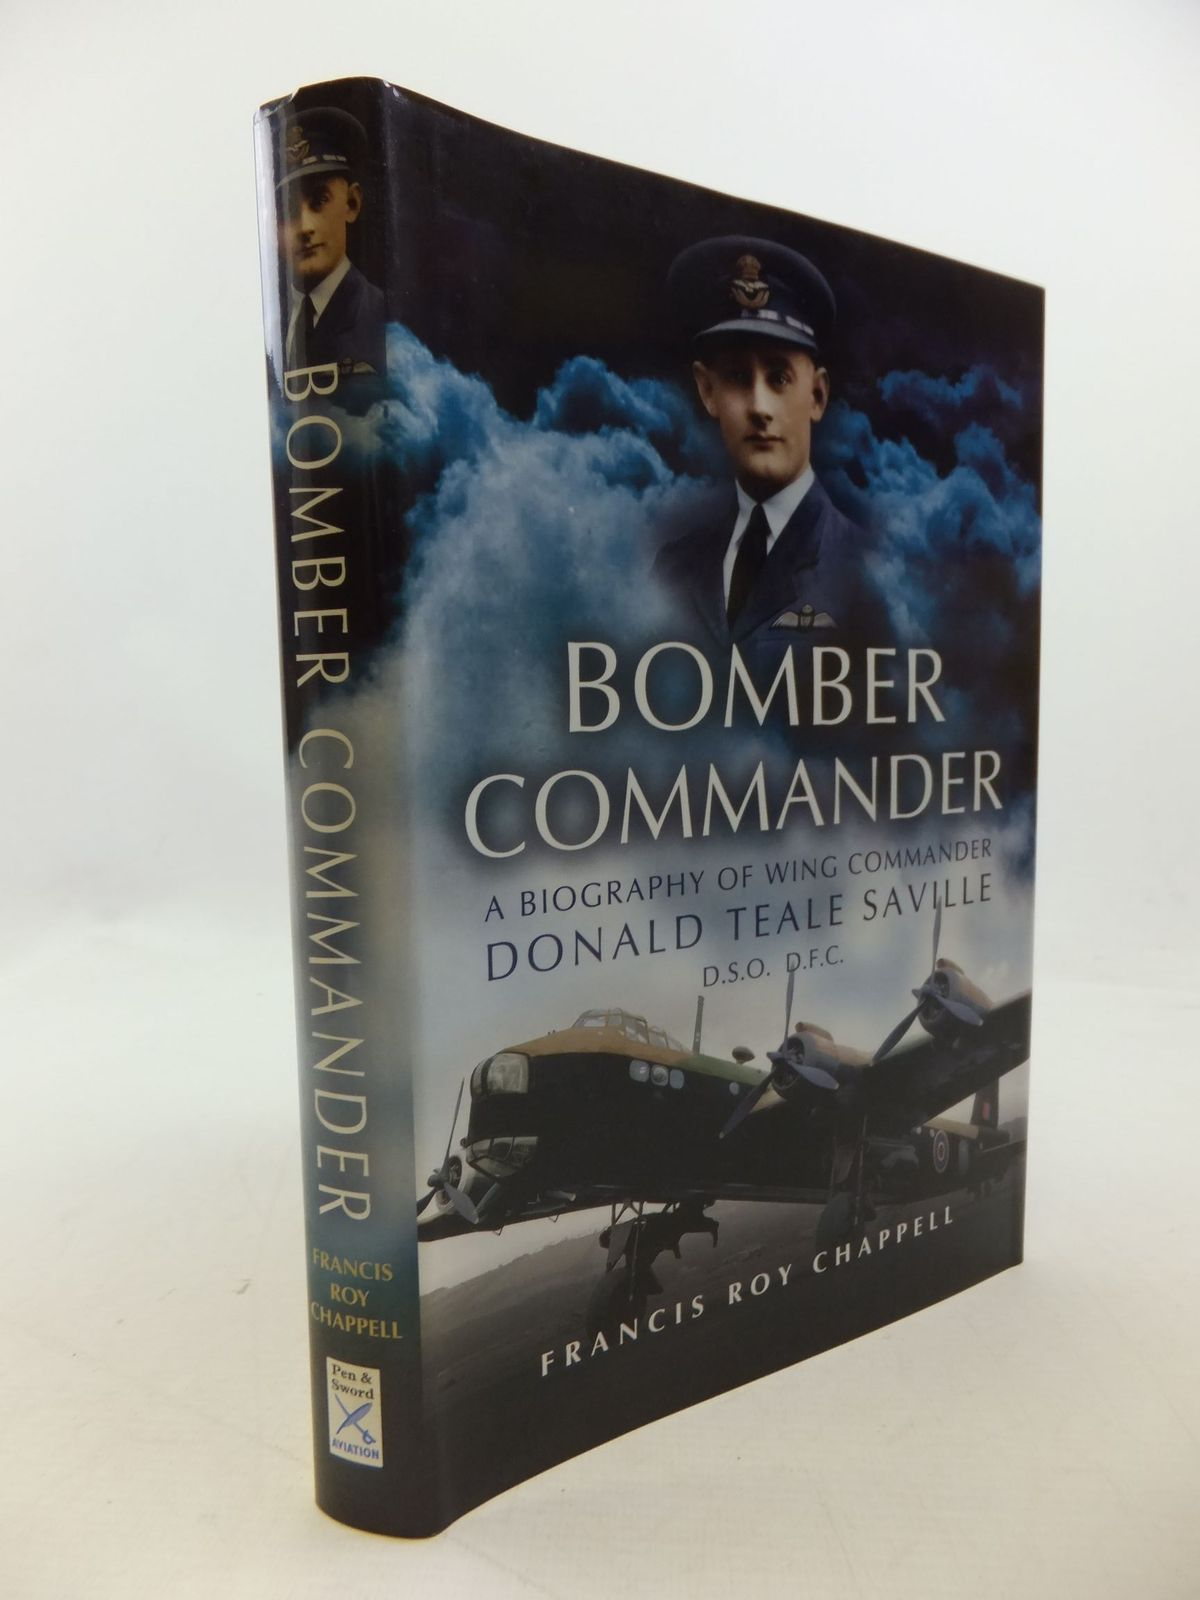 Photo of BOMBER COMMANDER A BIOGRAPHY OF WING COMMANDER DONALD TEALE SAVILLE written by Chappell, Francis Roy published by Pen & Sword Aviation (STOCK CODE: 1710103)  for sale by Stella & Rose's Books